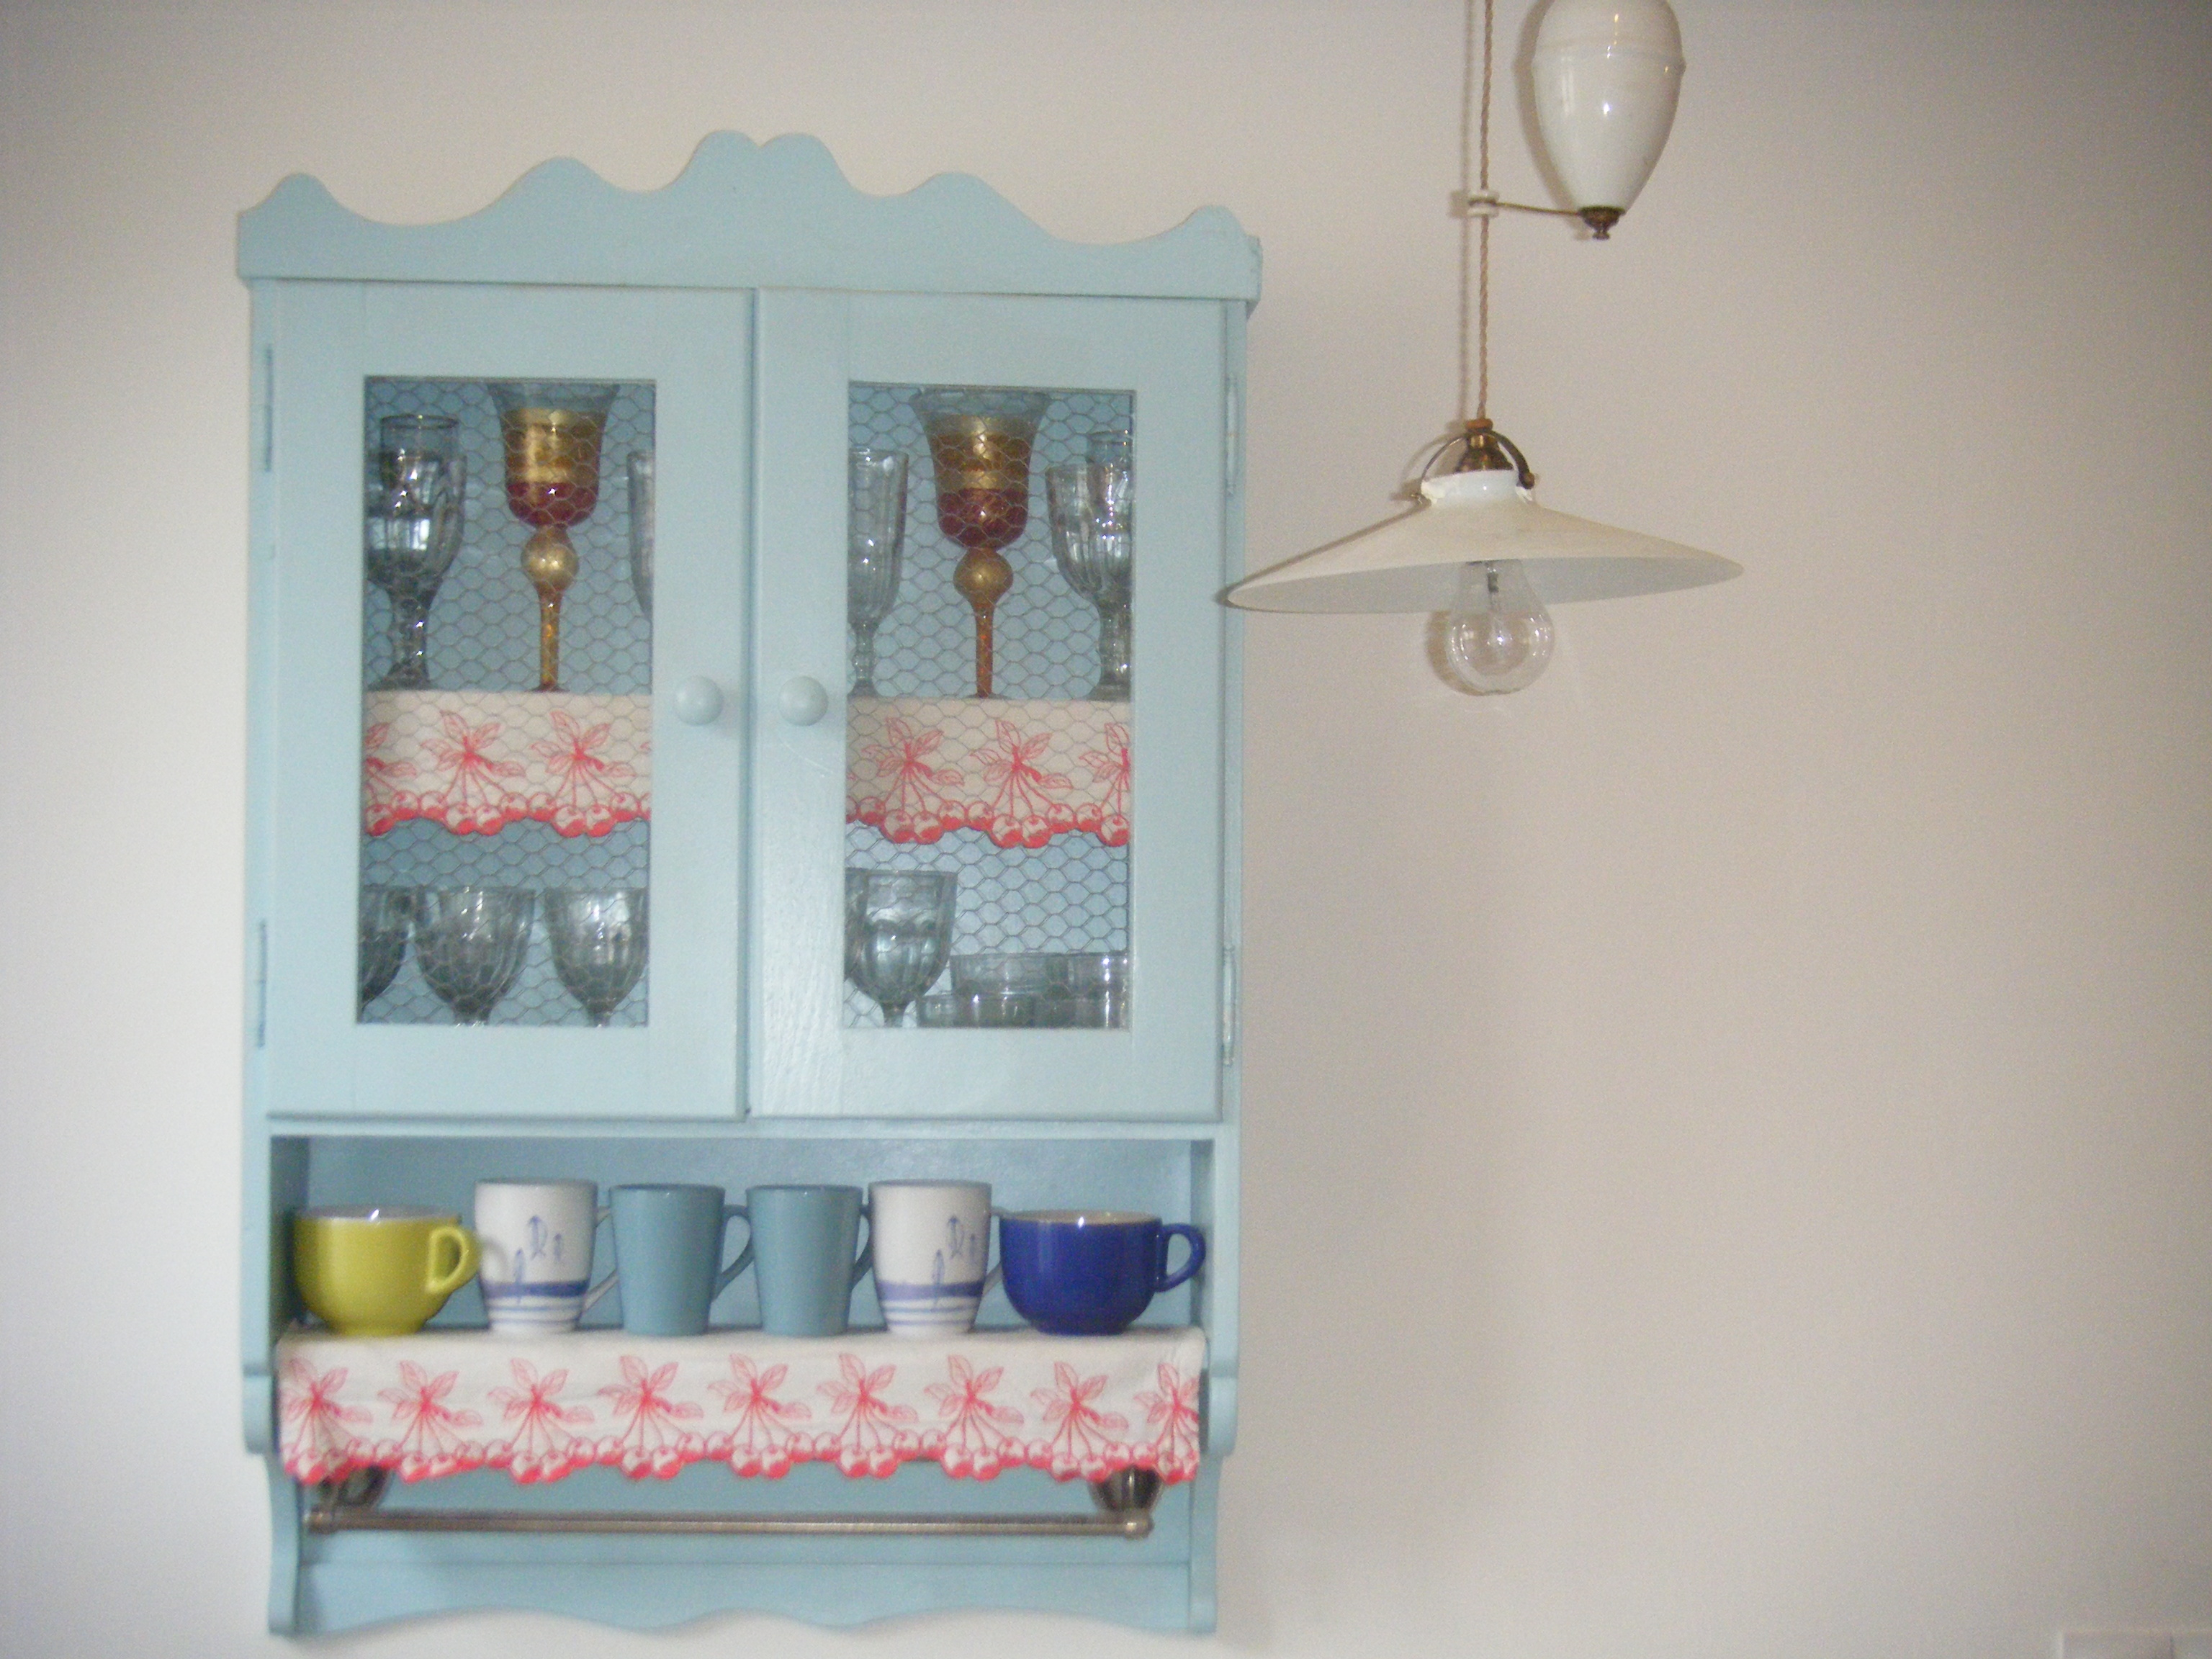 Cupboard with traditional Languedoc edging